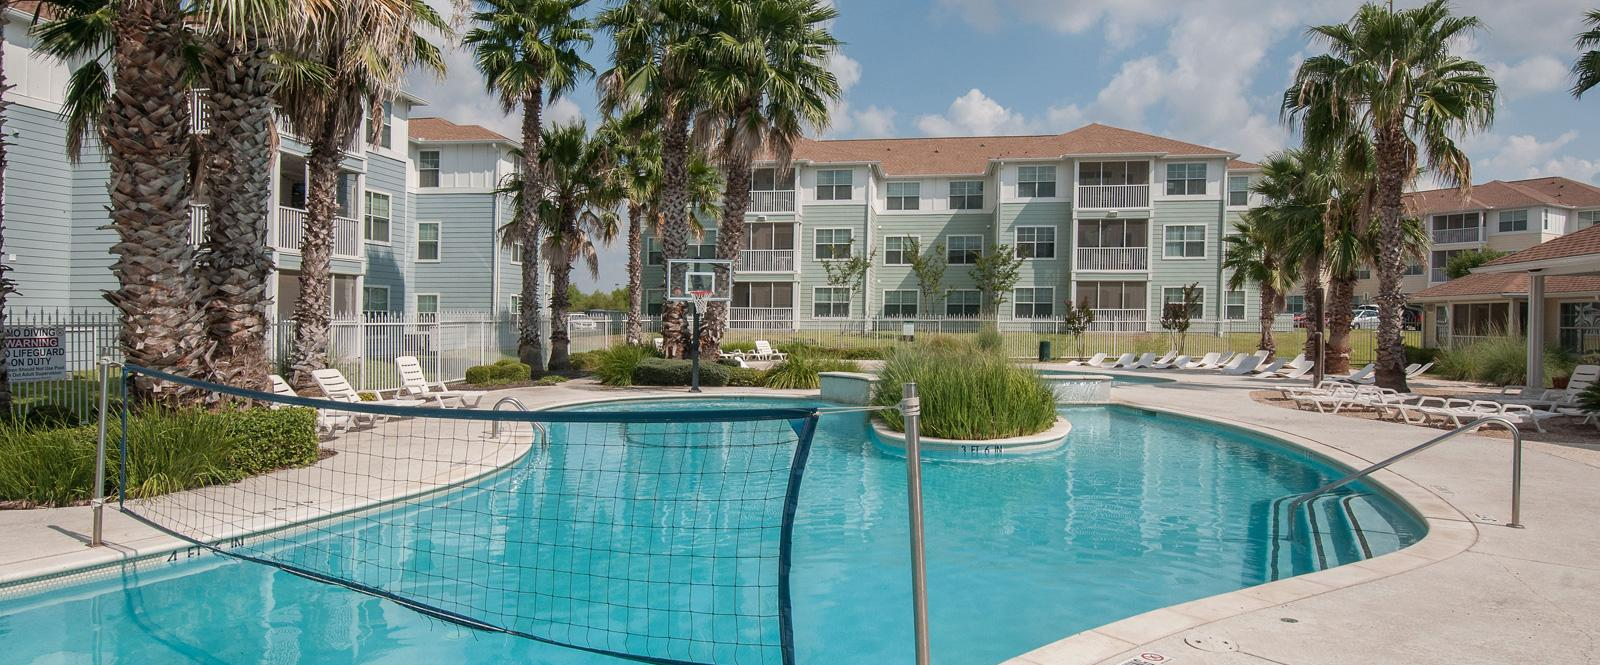 resident reviews of cabana beach san marcos